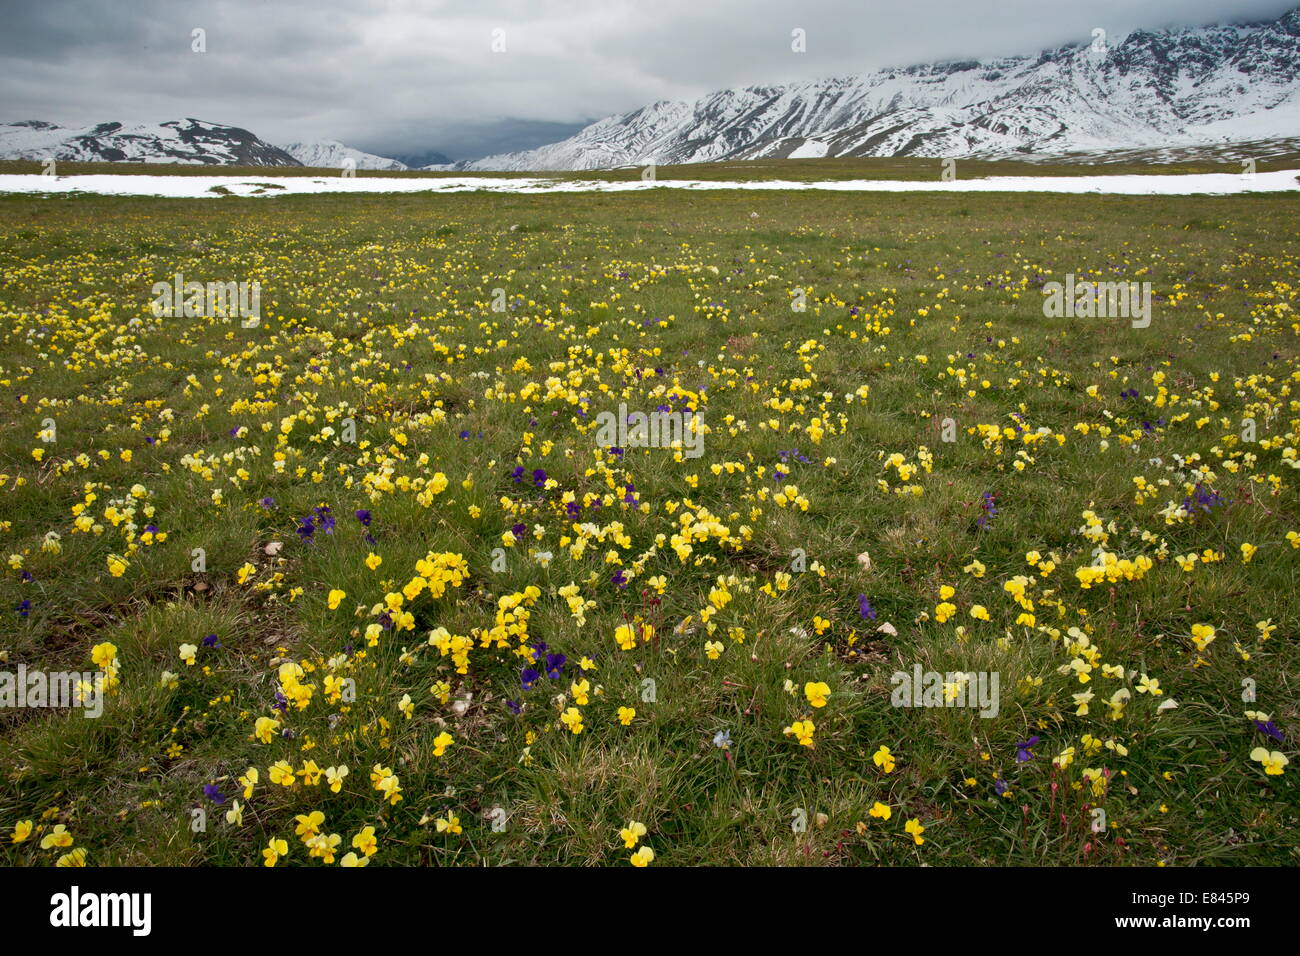 Masses of an endemic yellow pansy, Viola eugeniae ssp. eugeniae and other flowers on the Campo Imperatore, in Gran - Stock Image